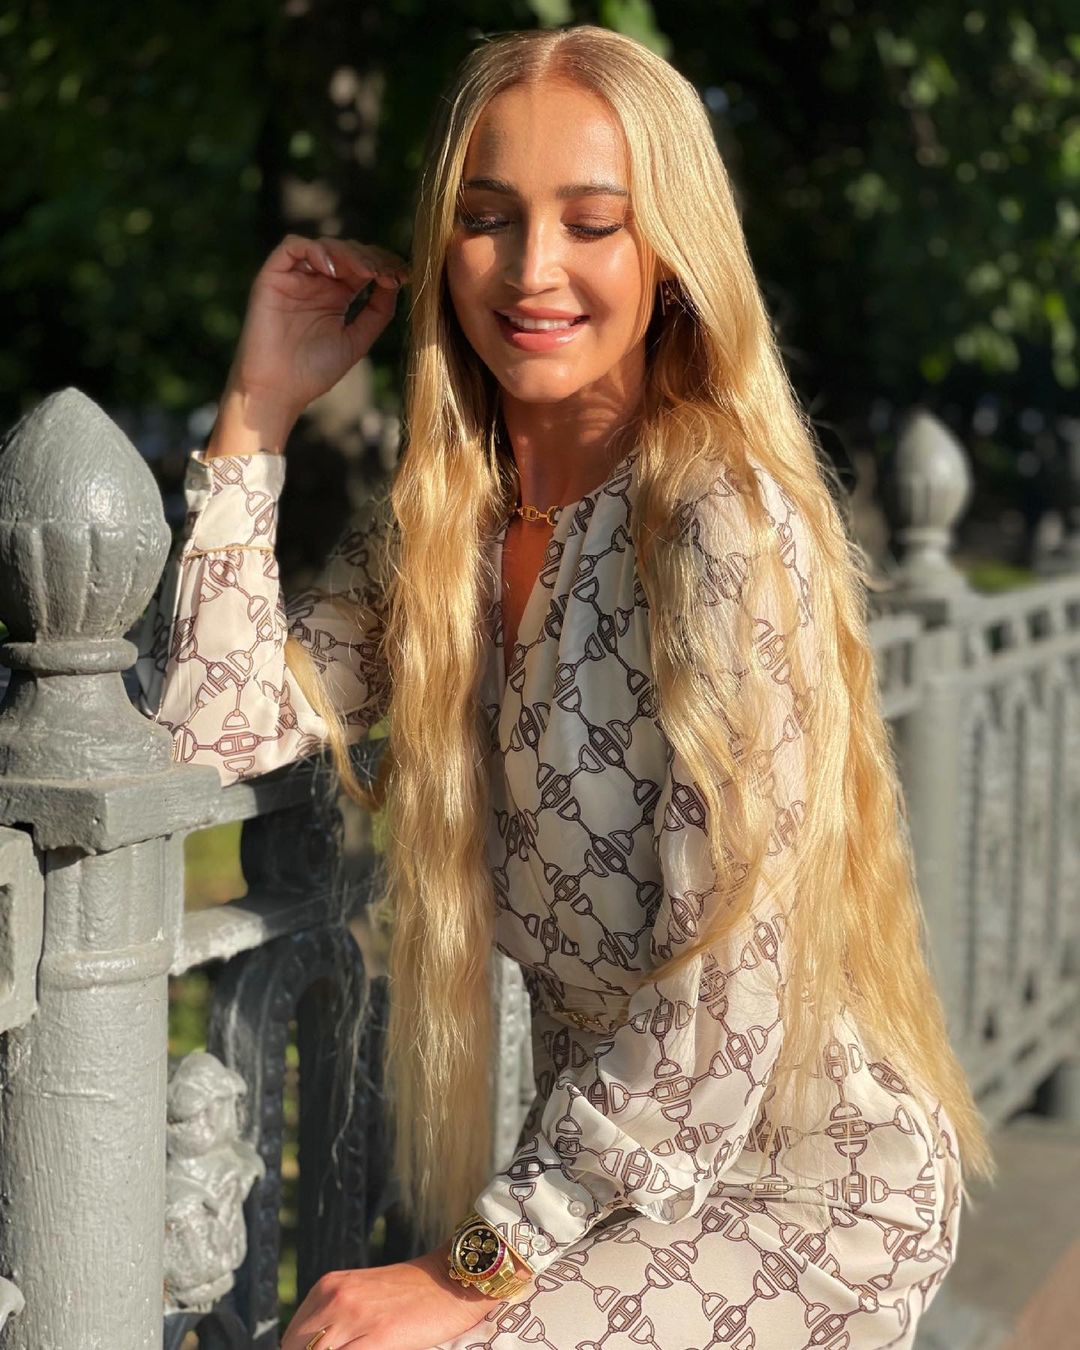 In pictures without Photoshop with a new hair color Olga Buzova looks depressing